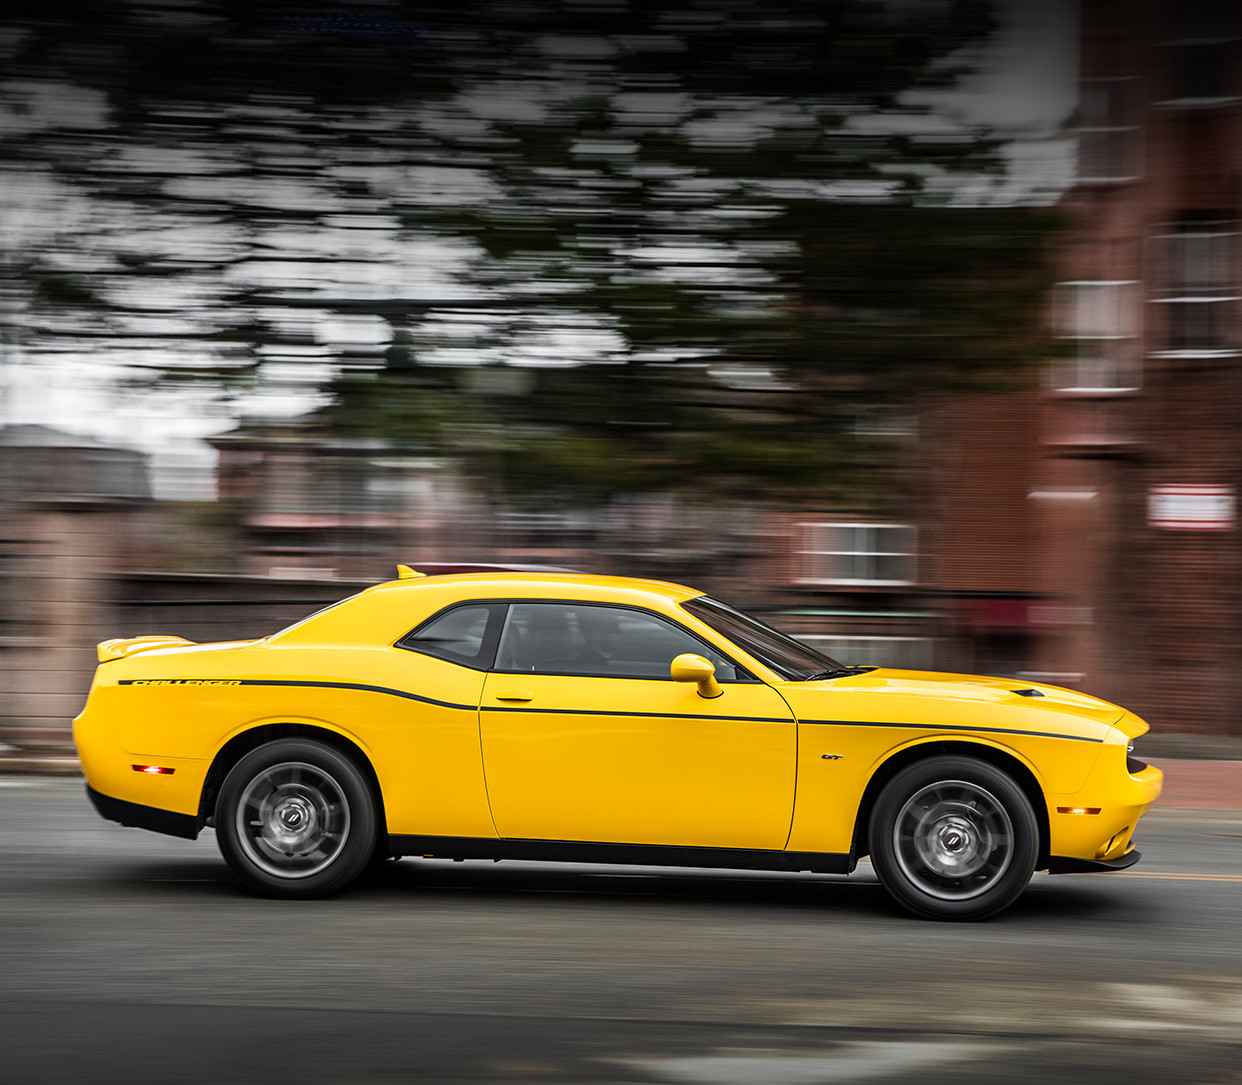 Yellow Dodge Challenger Driving Down a Street